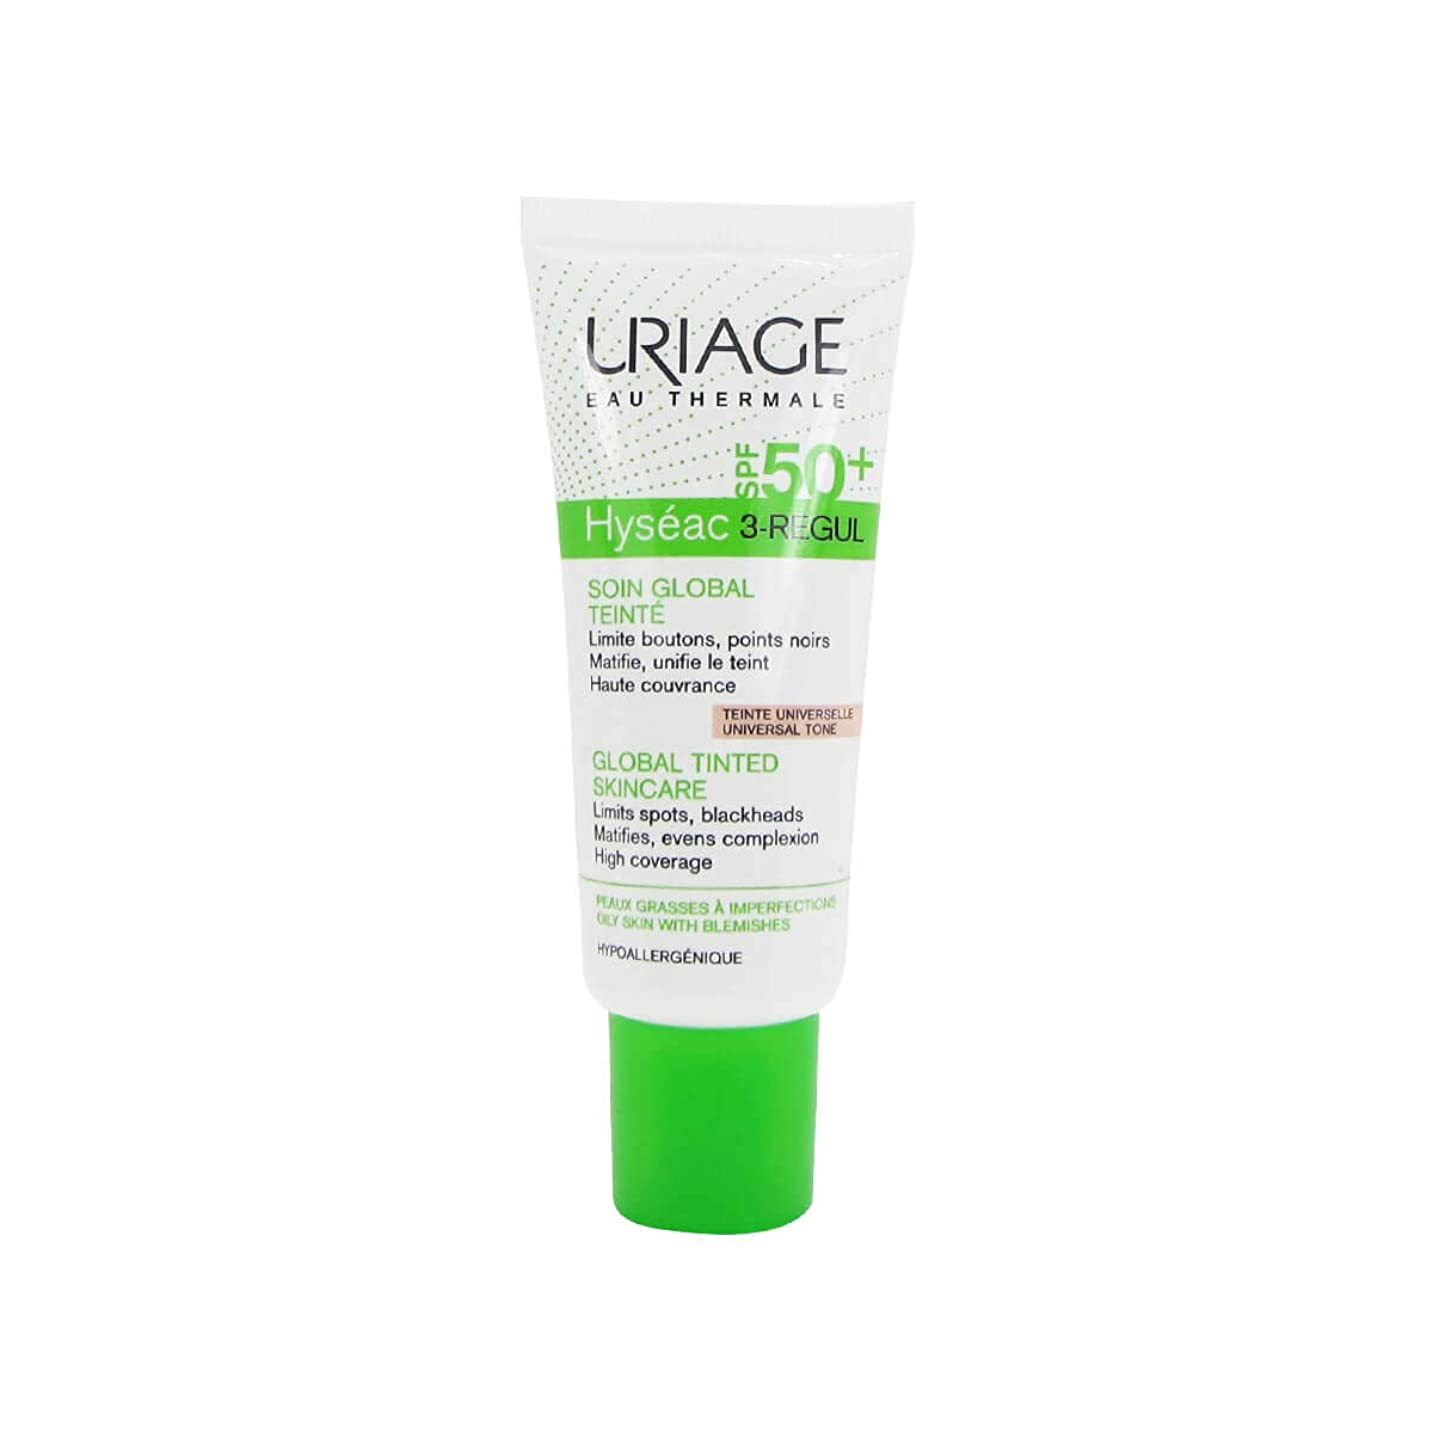 ガードラジカルサッカーUriage Hyseac 3-Regul Global Care With Color Spf50 40ml